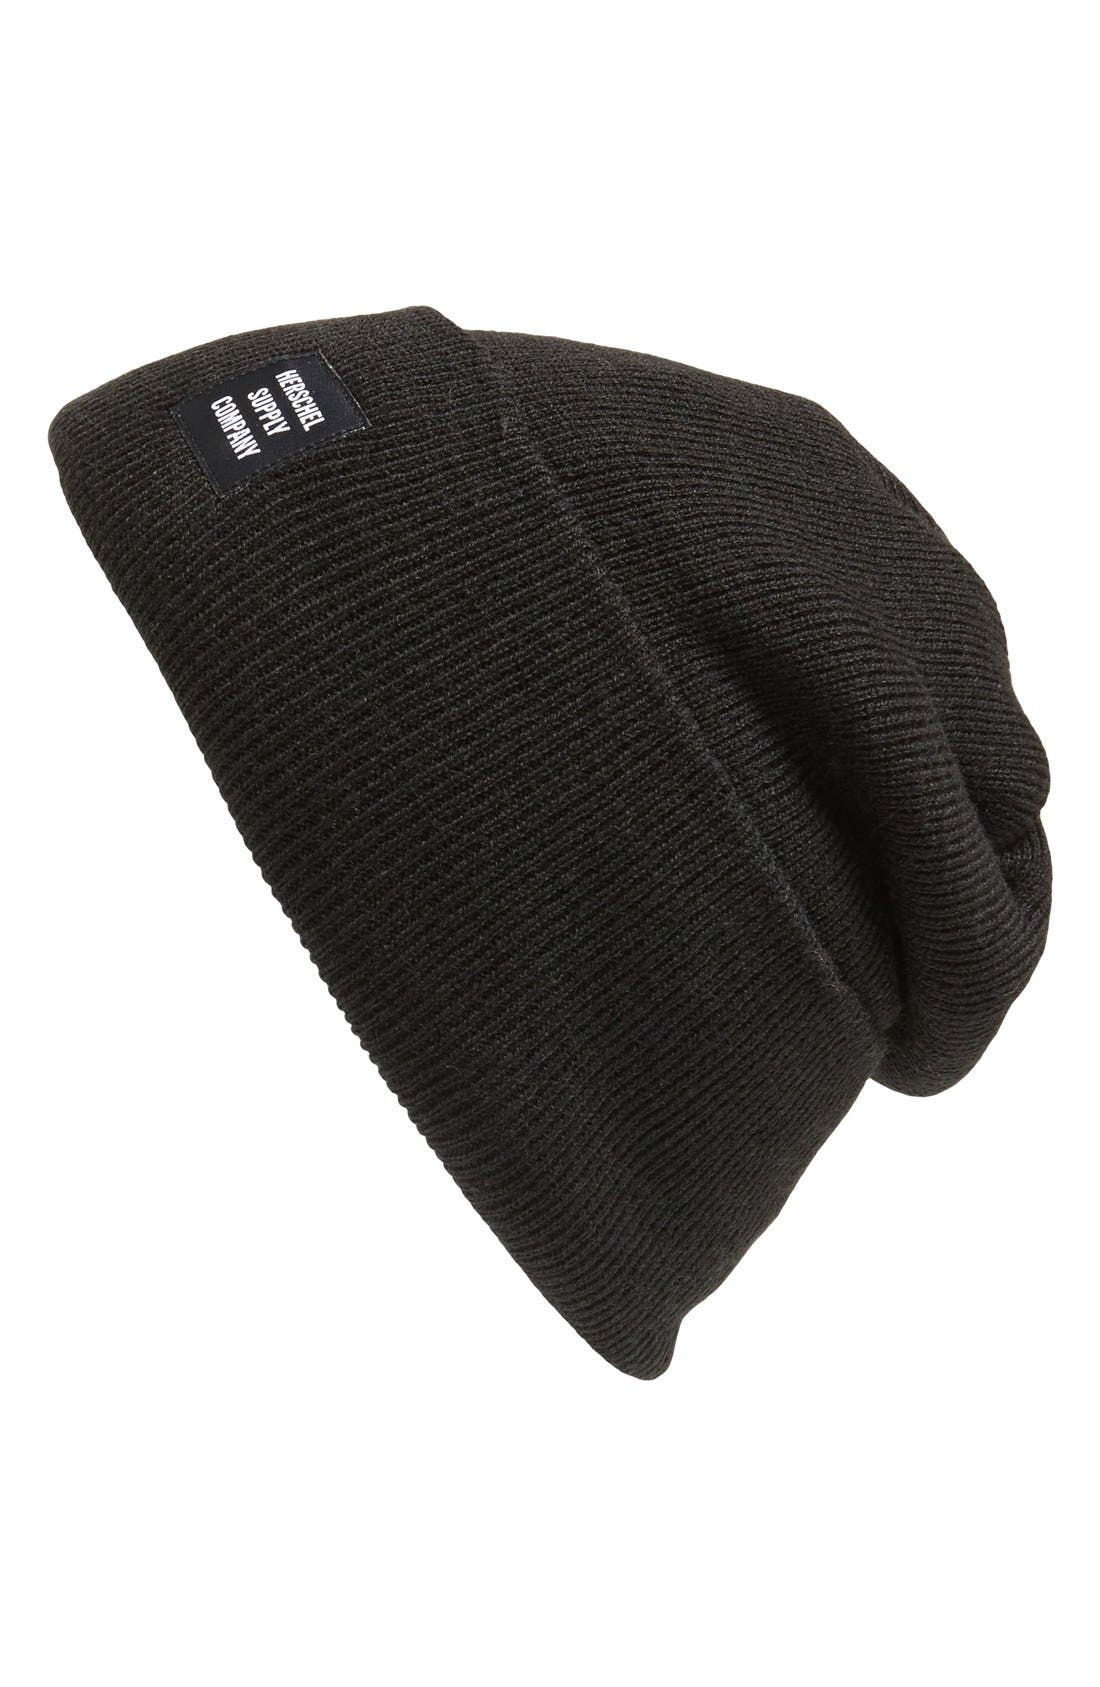 Main Image - Herschel Supply Co. 'Abbott' Knit Cap